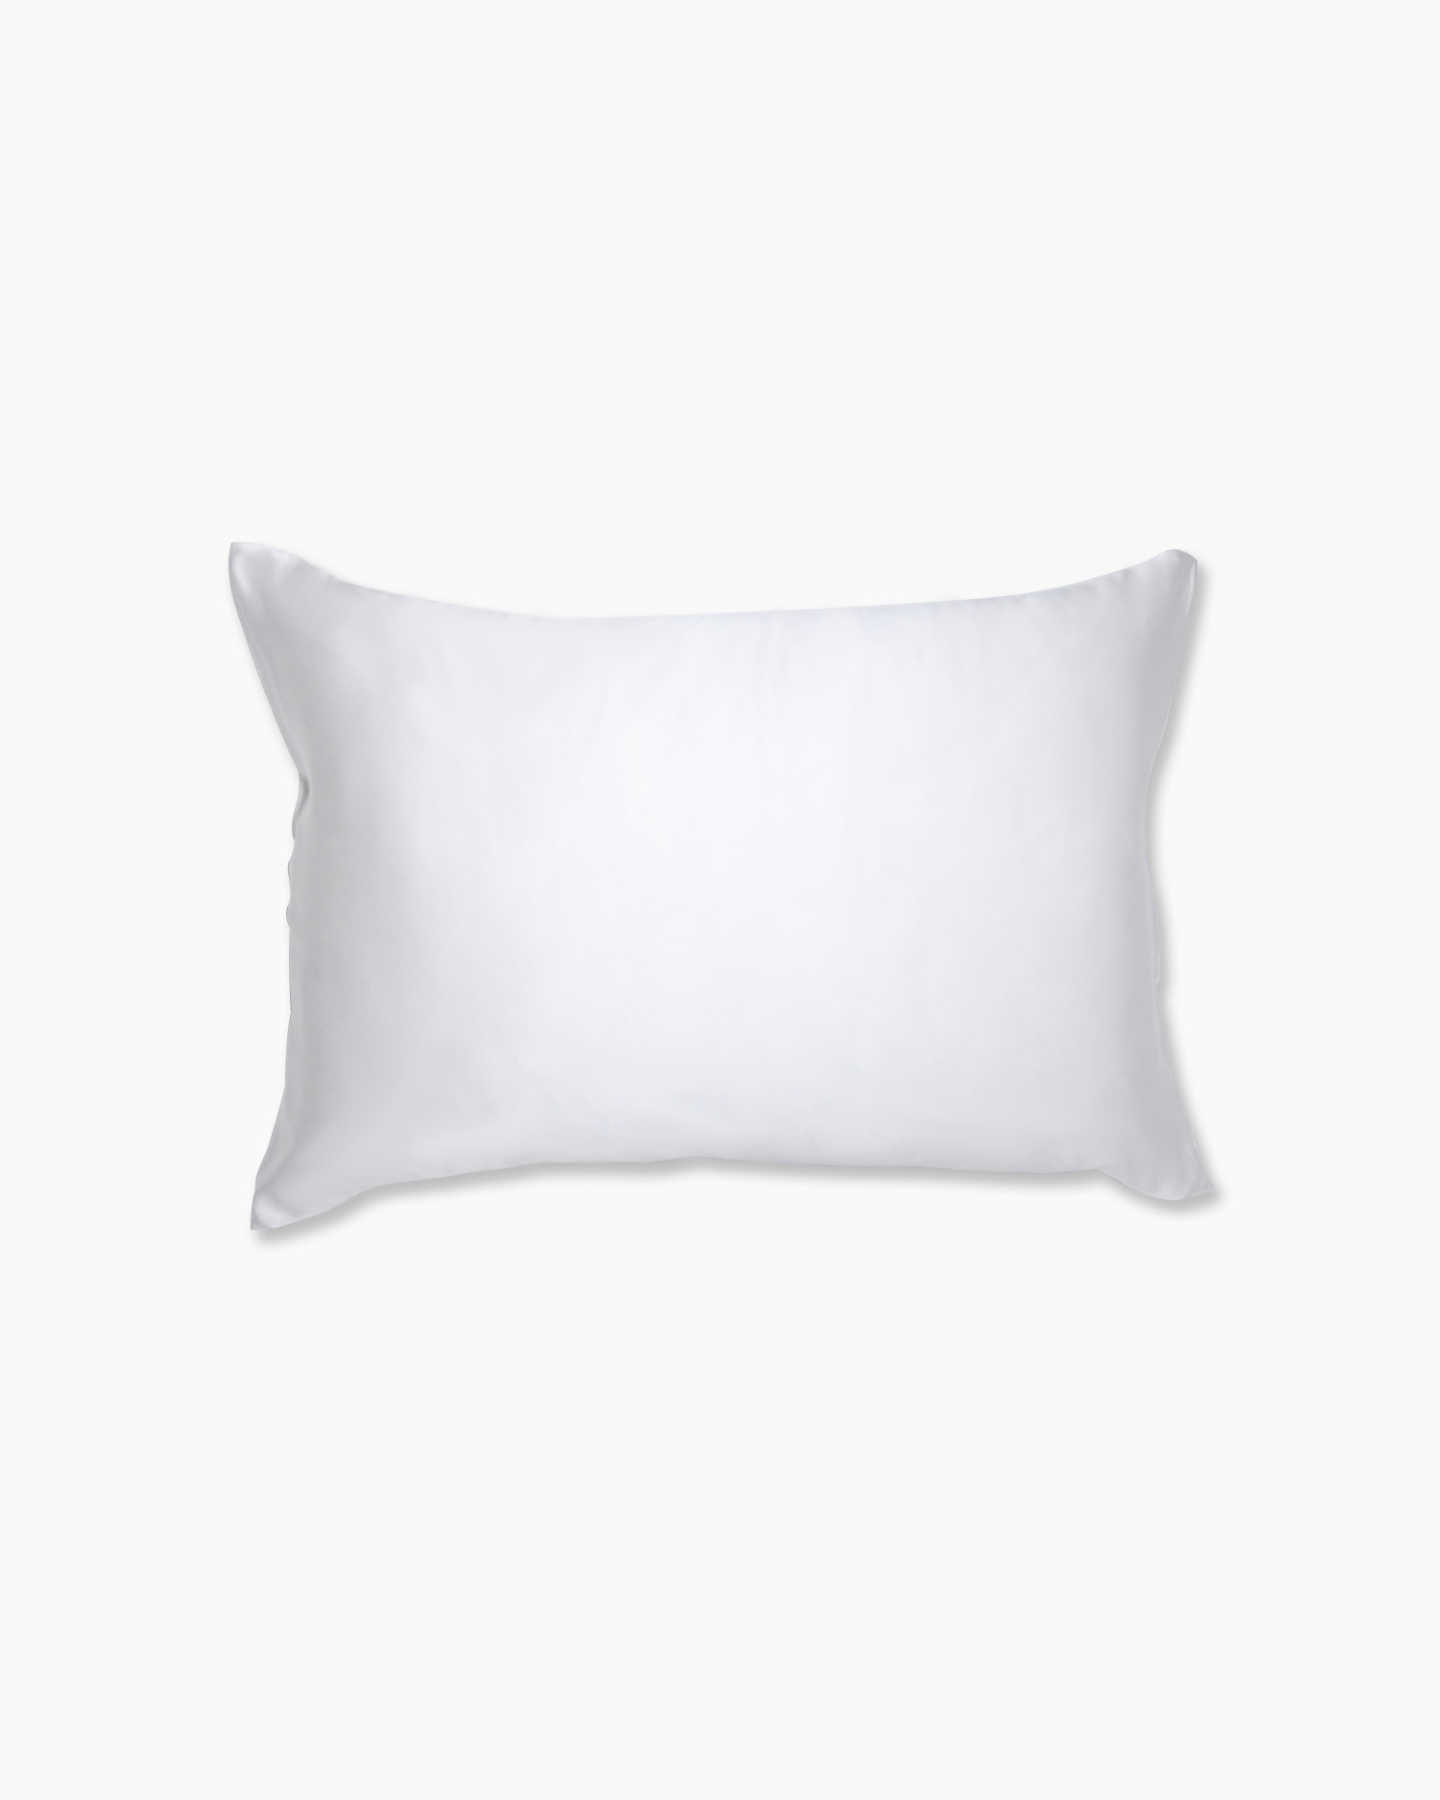 Pair With - Mulberry Silk Beauty Sleep Pillowcase - Grey